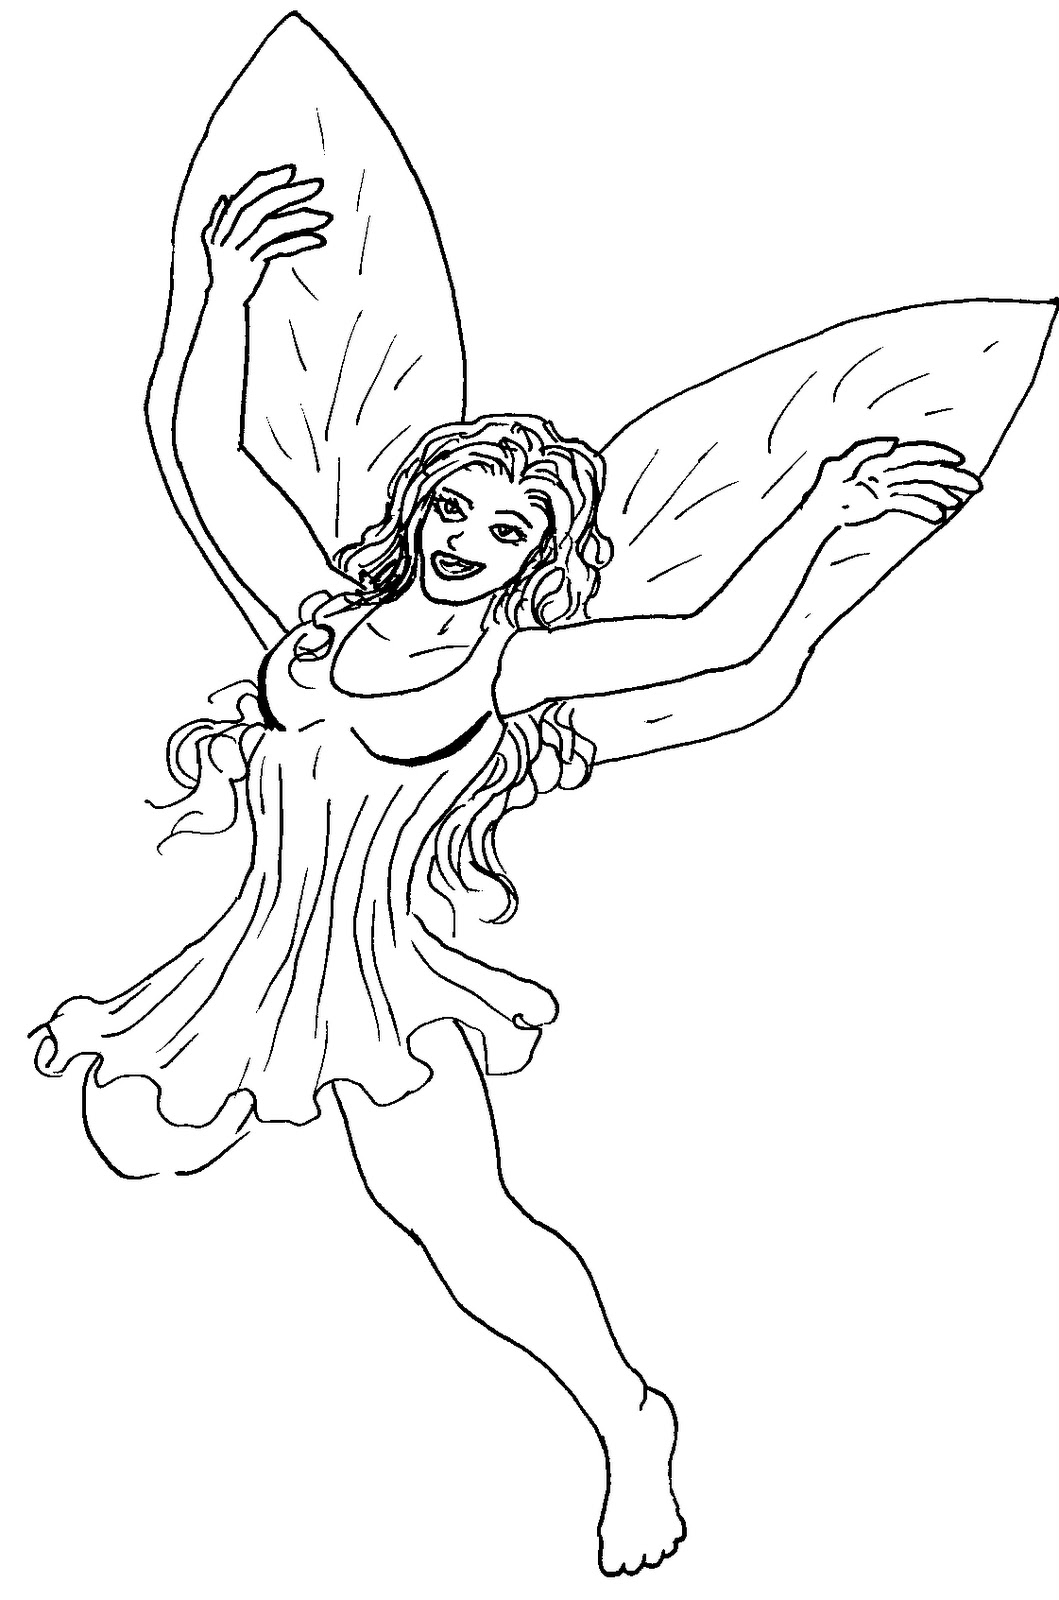 This is an image of Wild Printable Girl Coloring Pages